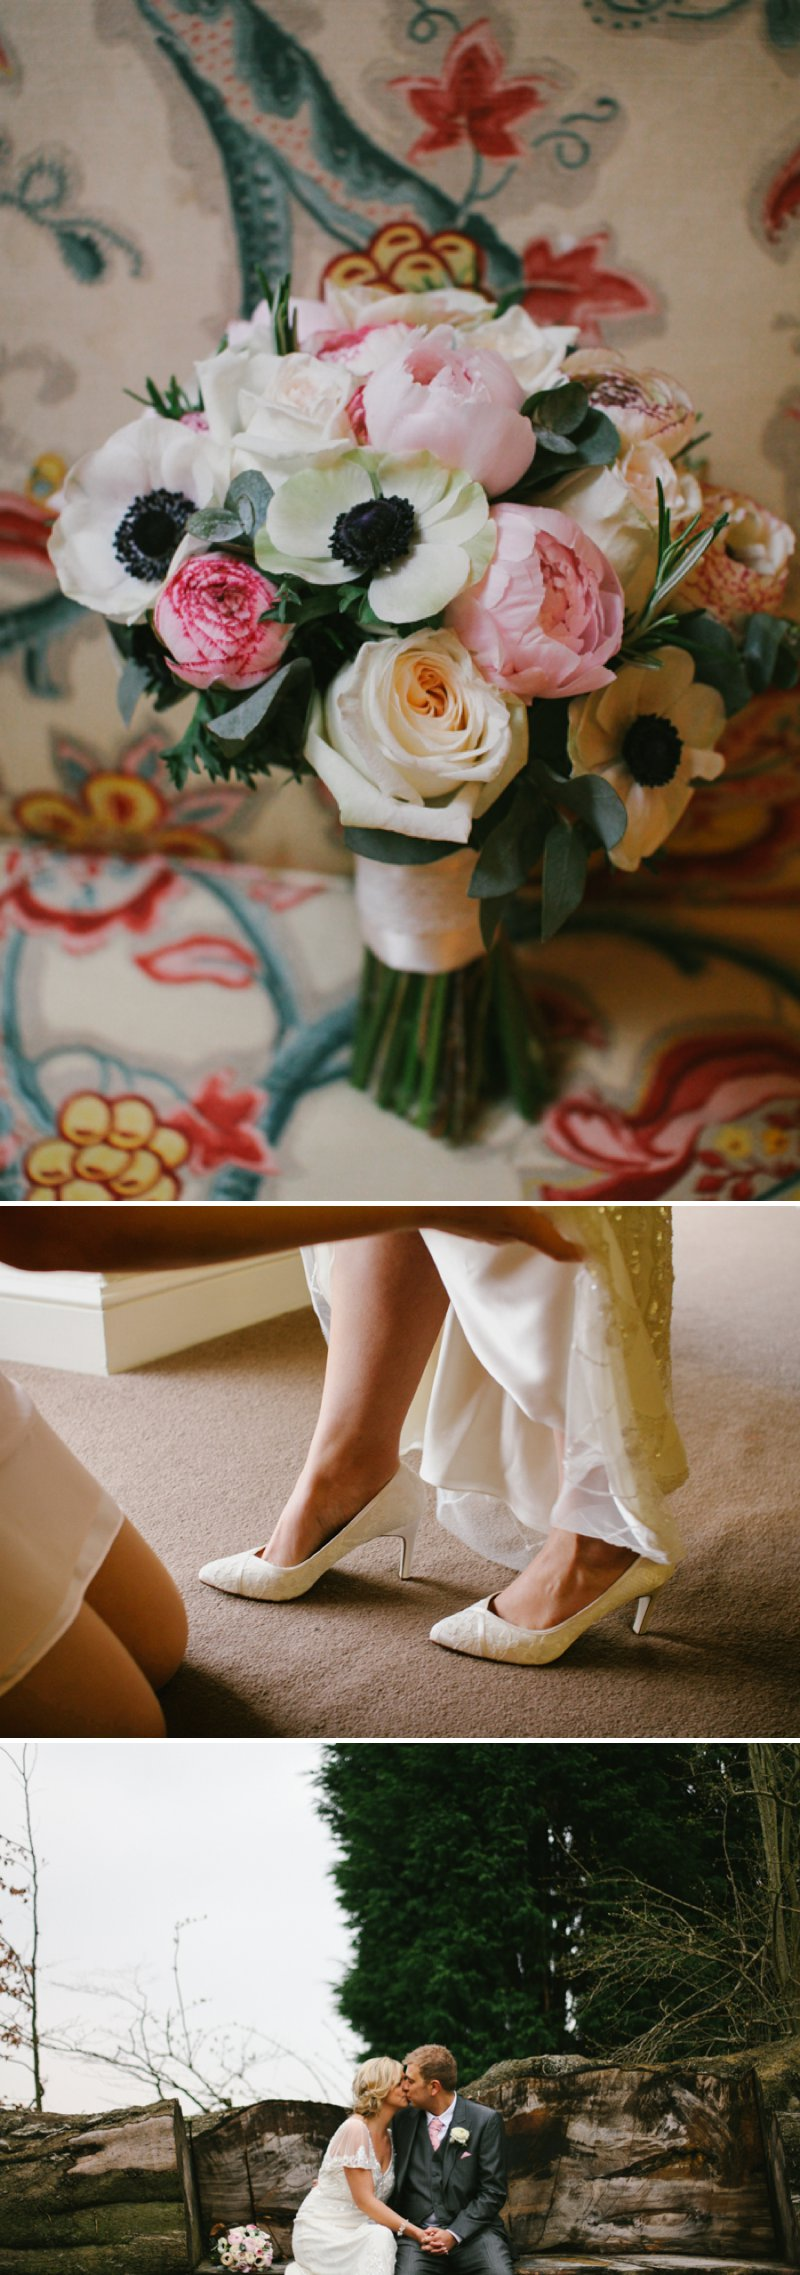 A vintage inspired wedding at hazlewood castle in for Wedding dress display at home